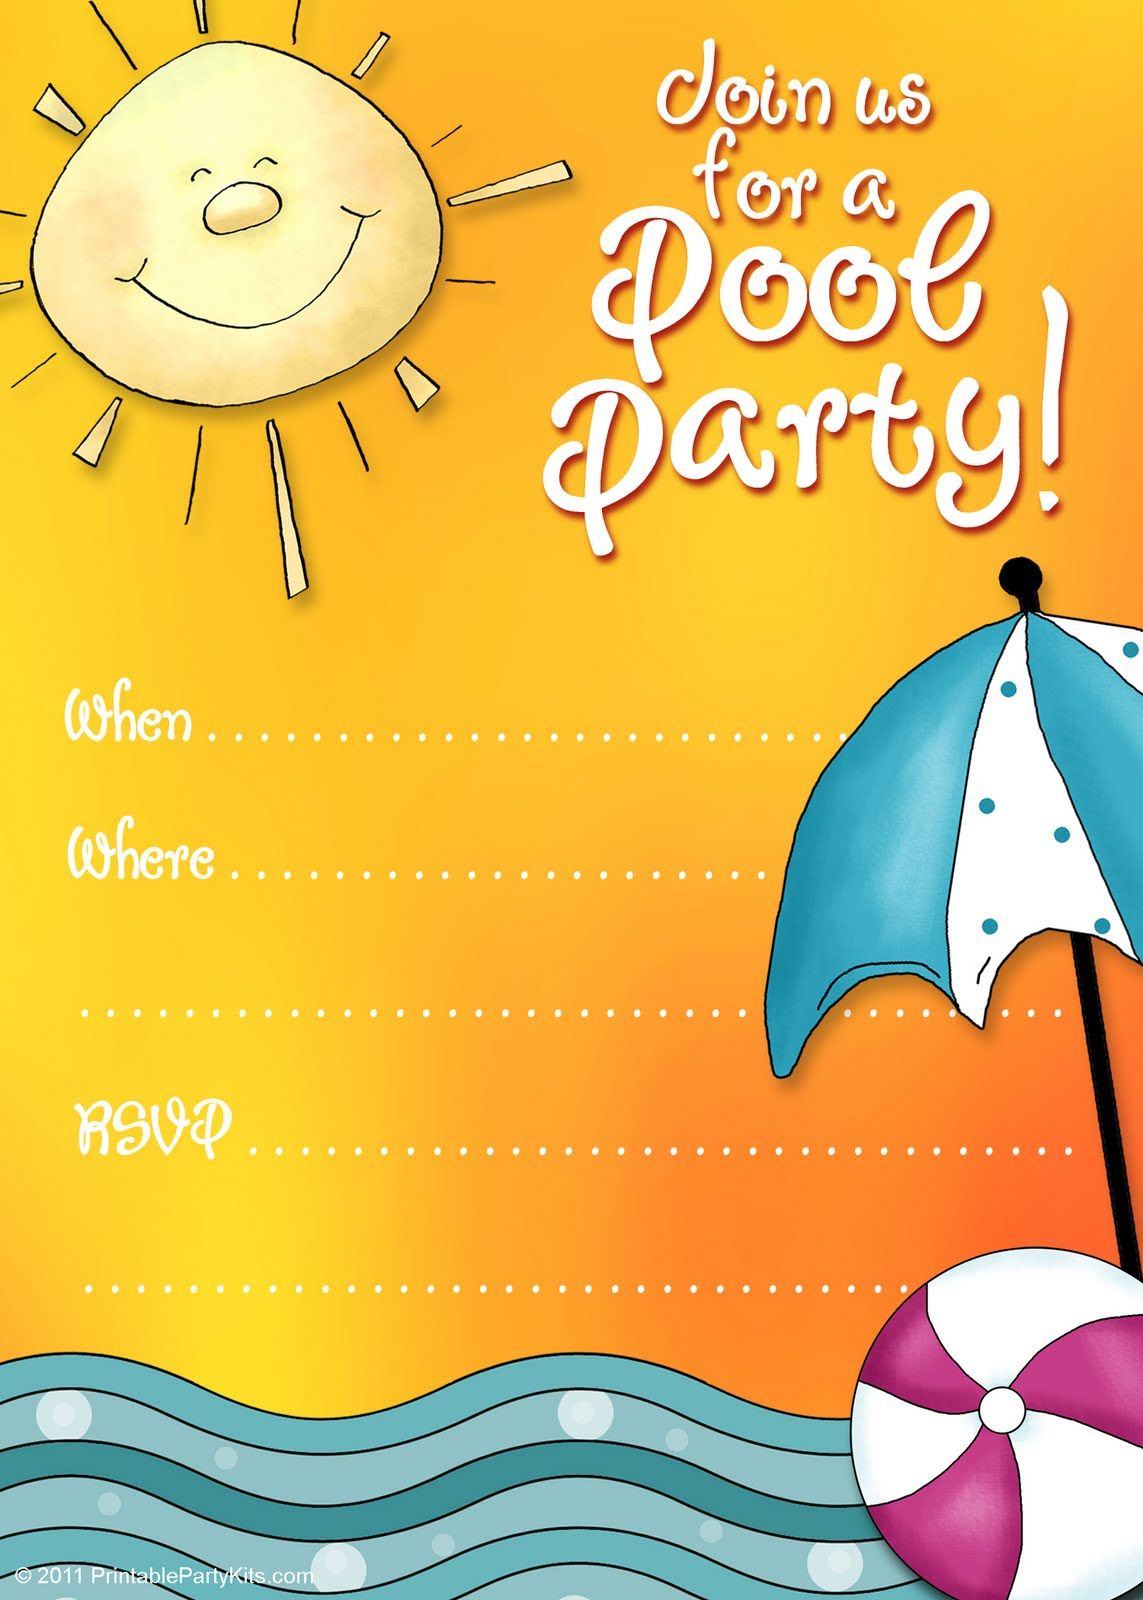 Free Printable Party Invitations Summer Pool Party Invites – Birthday Pool Party Invitation